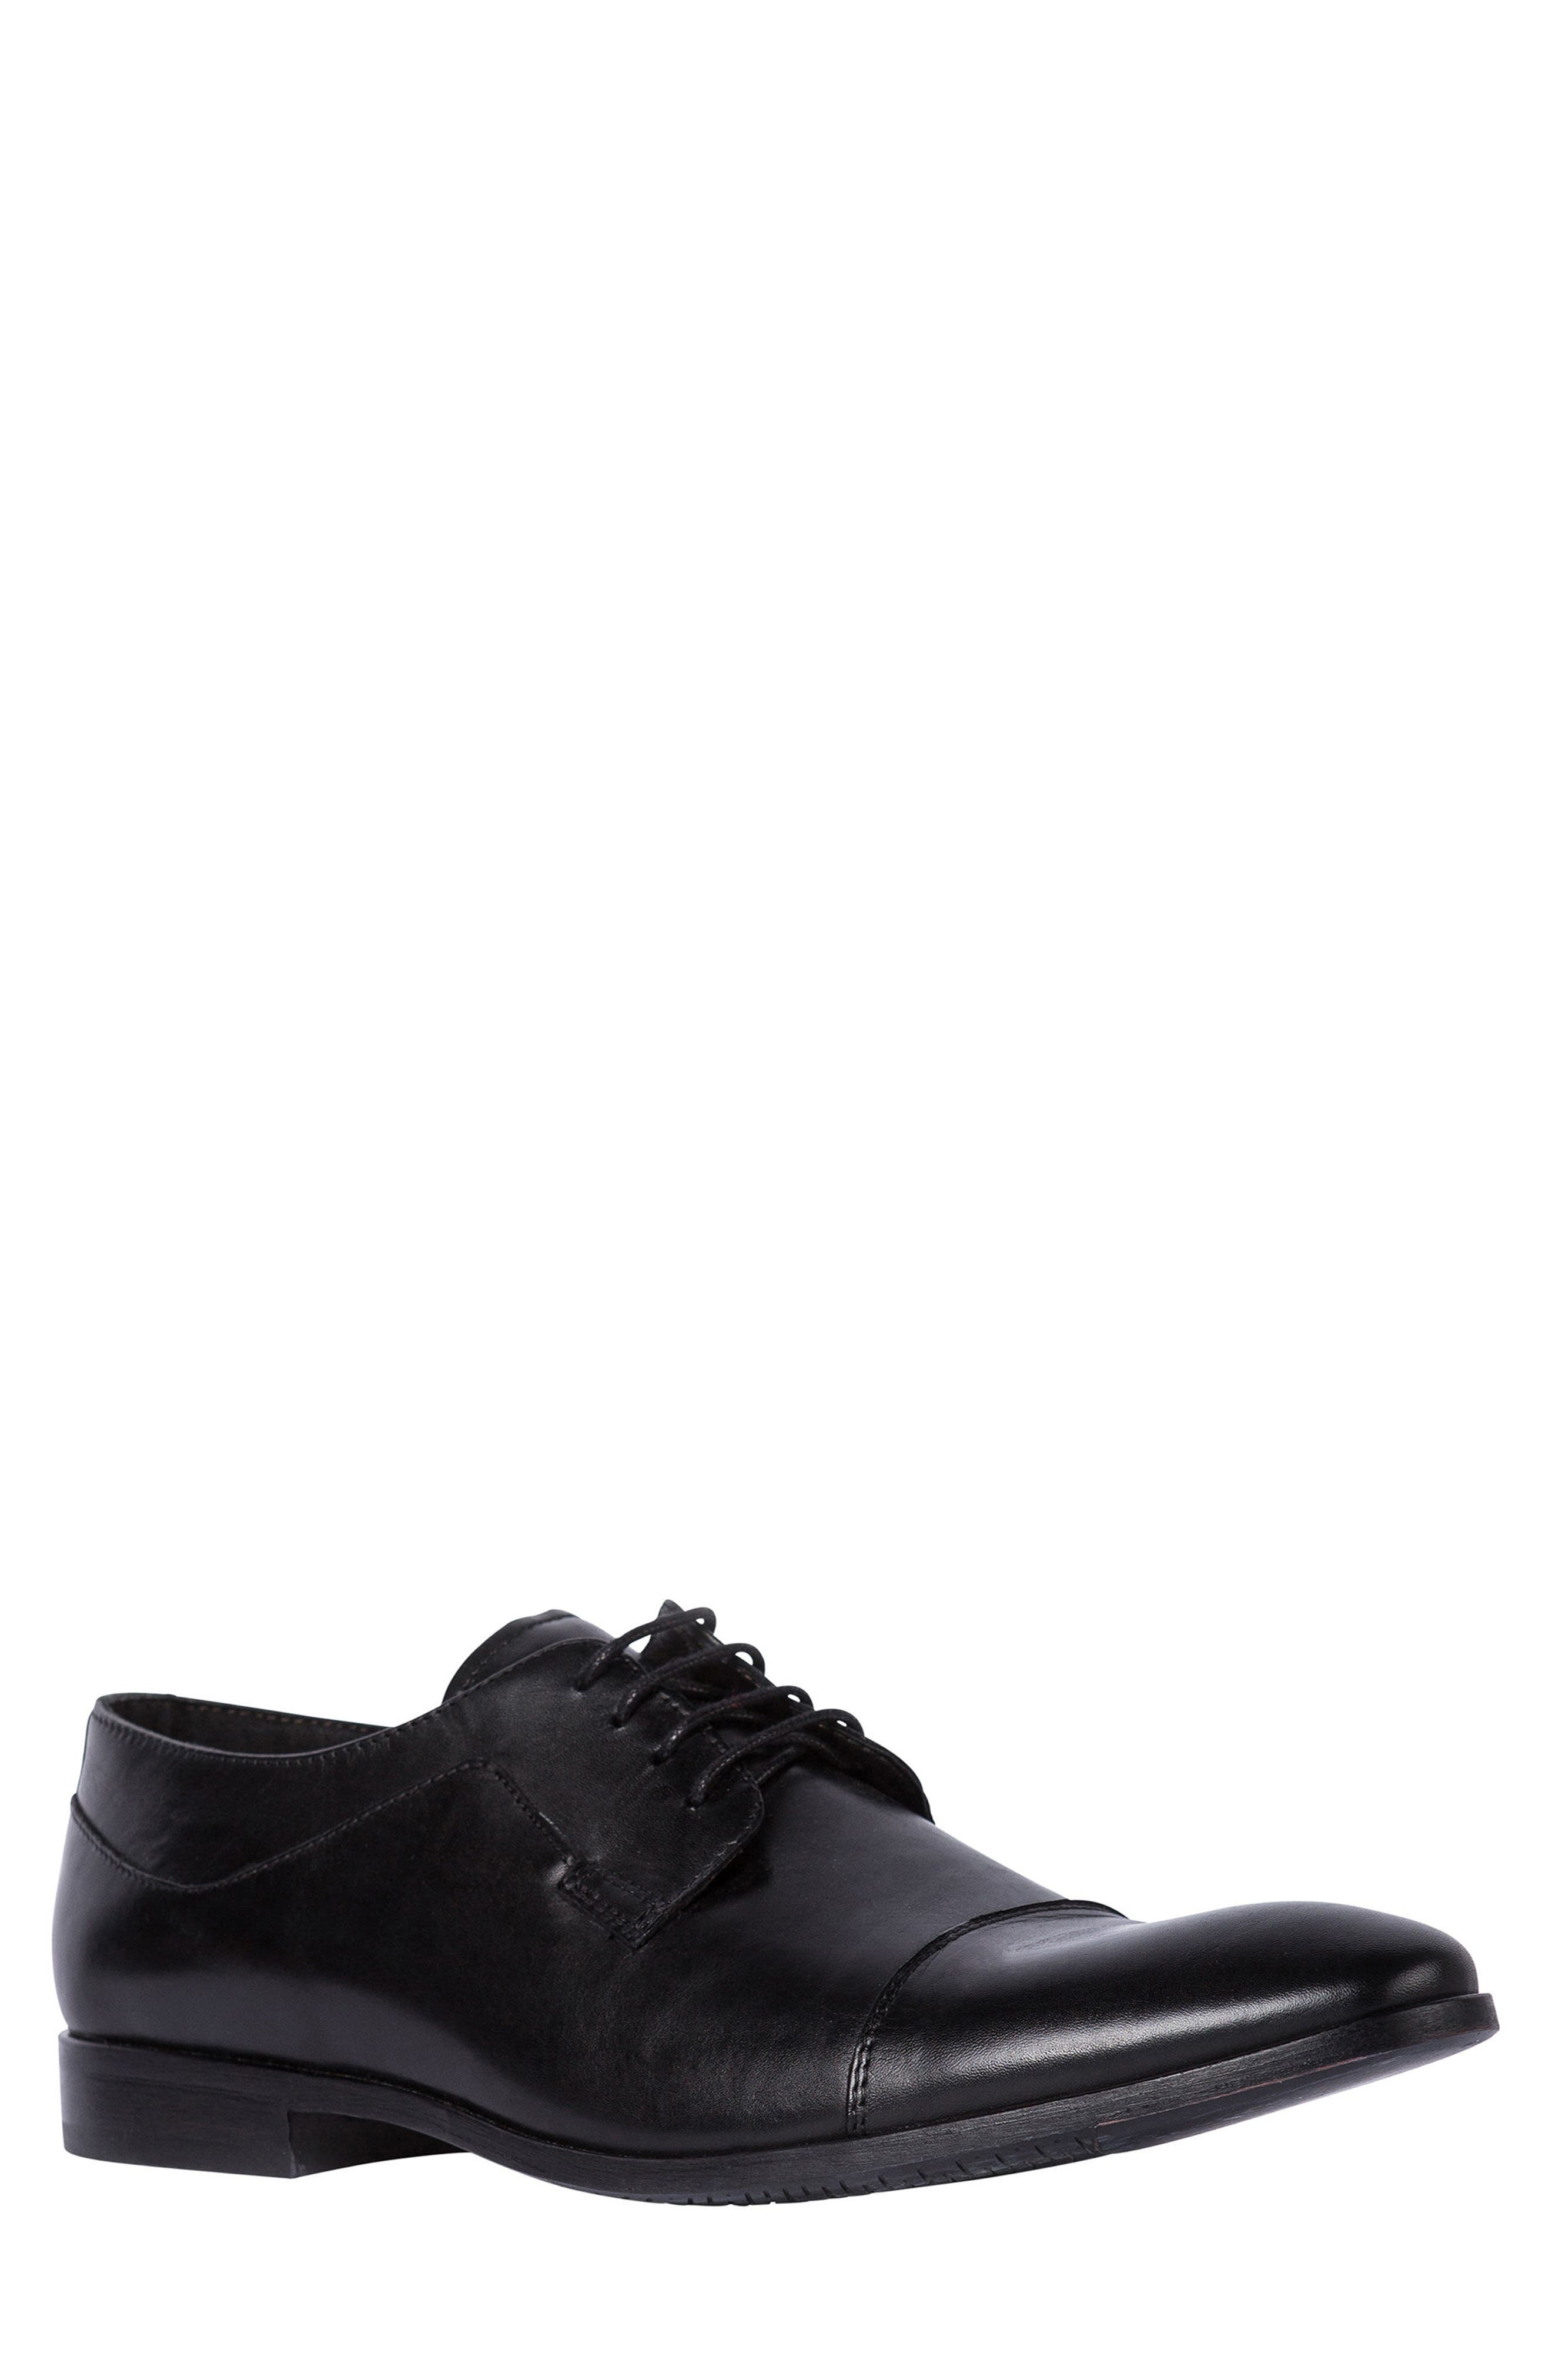 Admiral's Way Cap Toe Derby,                             Main thumbnail 1, color,                             Nero Leather